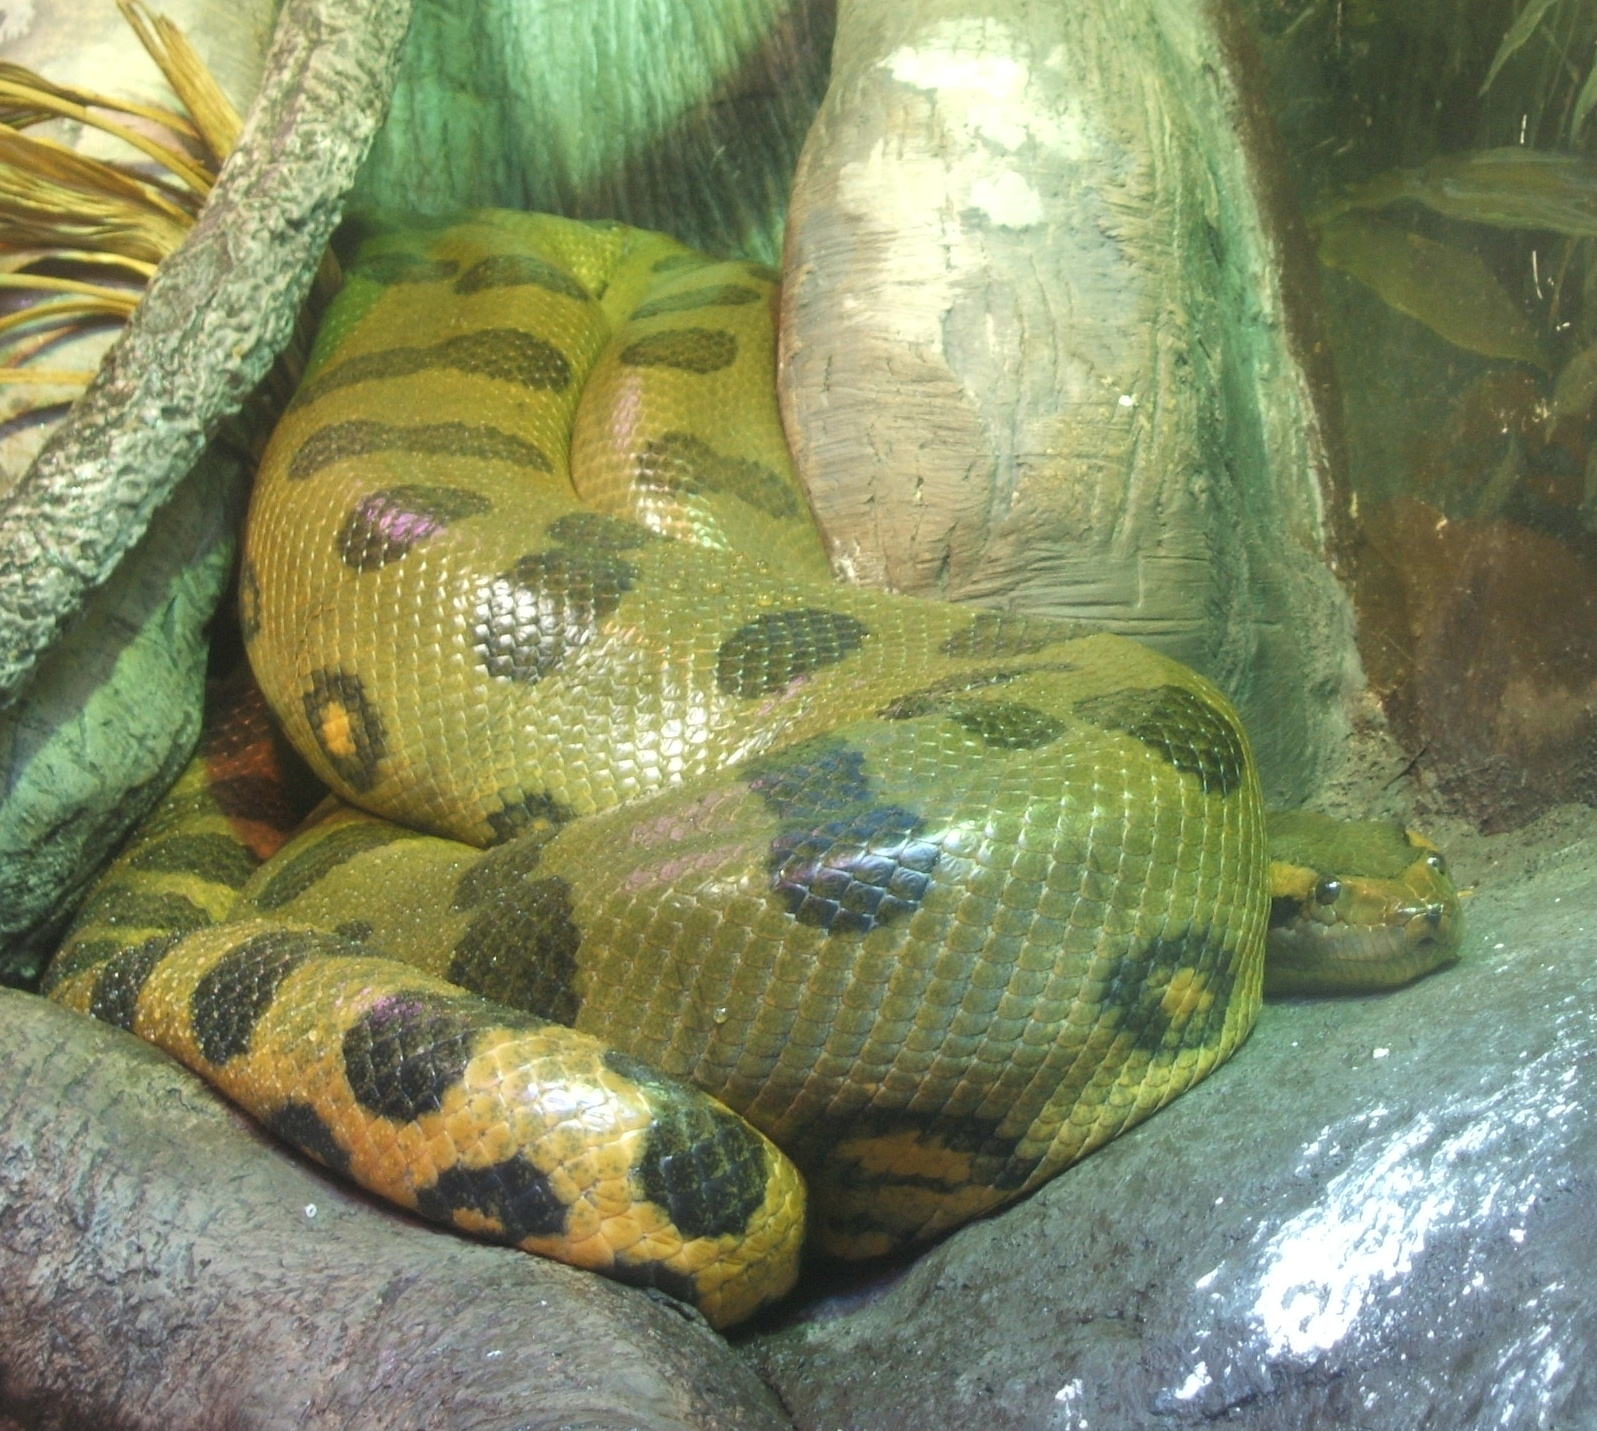 File:Green-anaconda.jpg - Wikimedia Commons